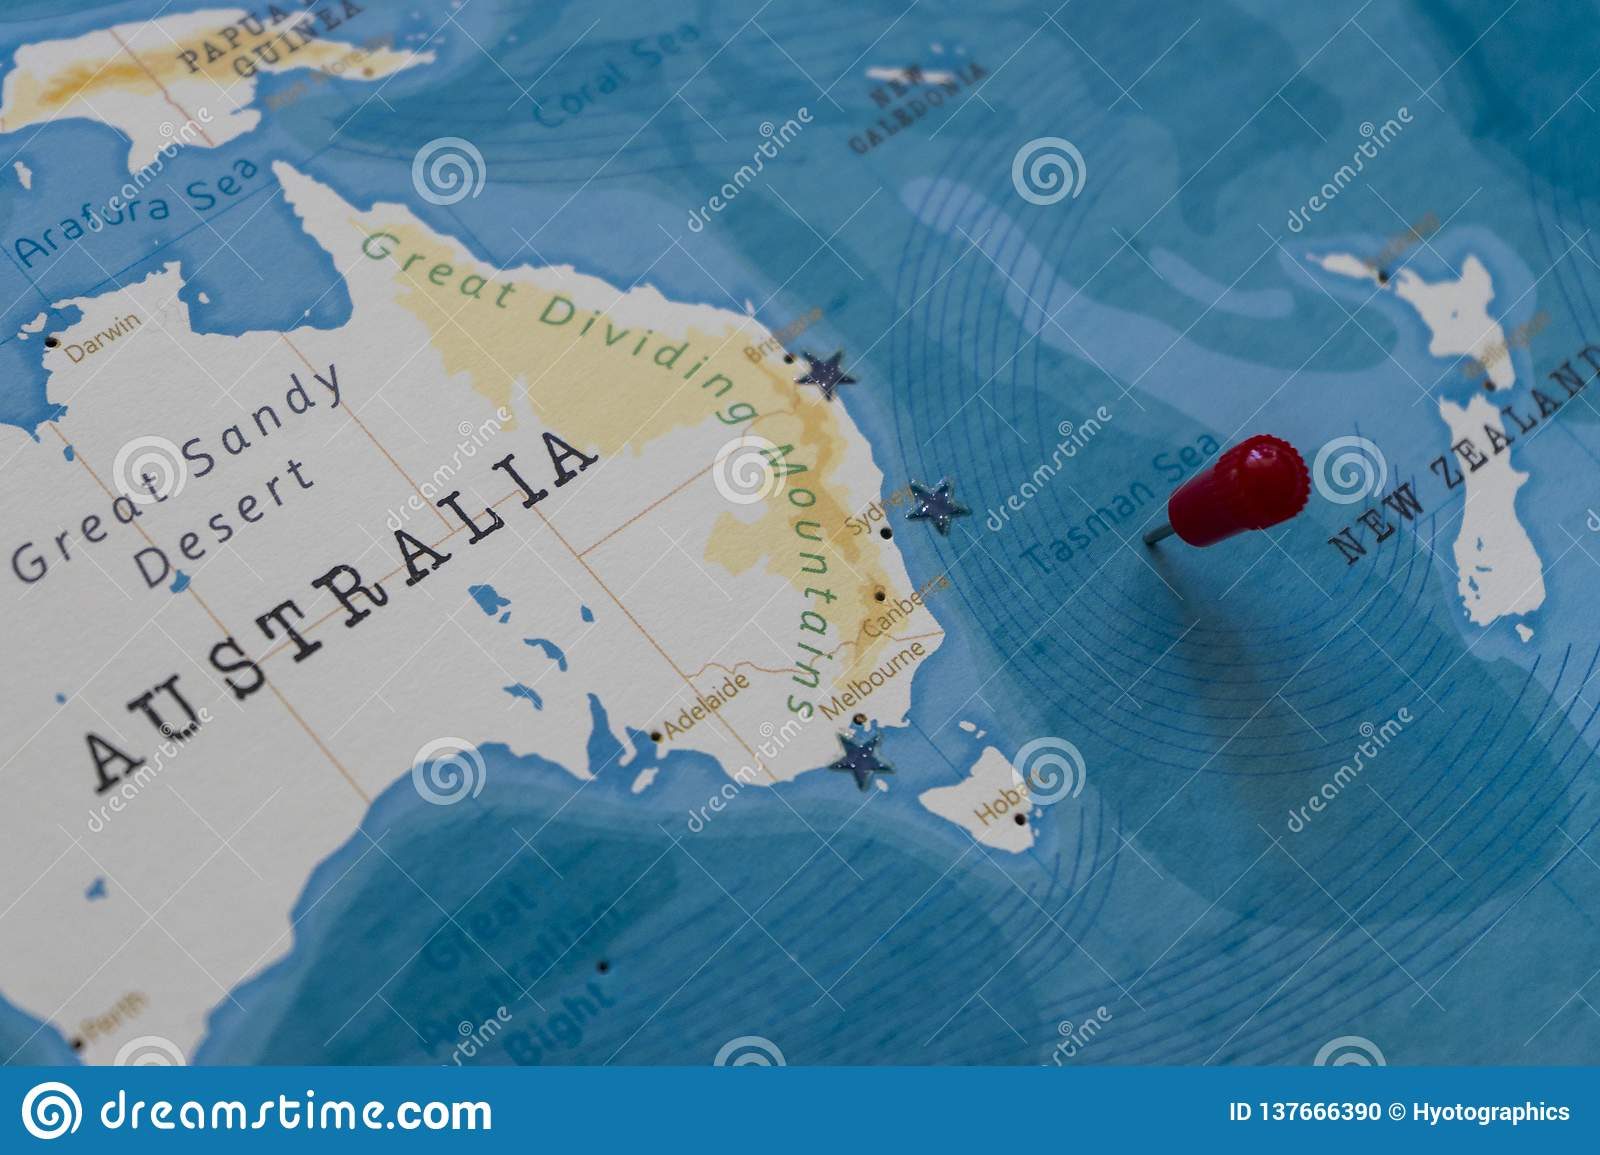 A Pin On Tasman Sea In The World Map Stock Photo - Image of ...